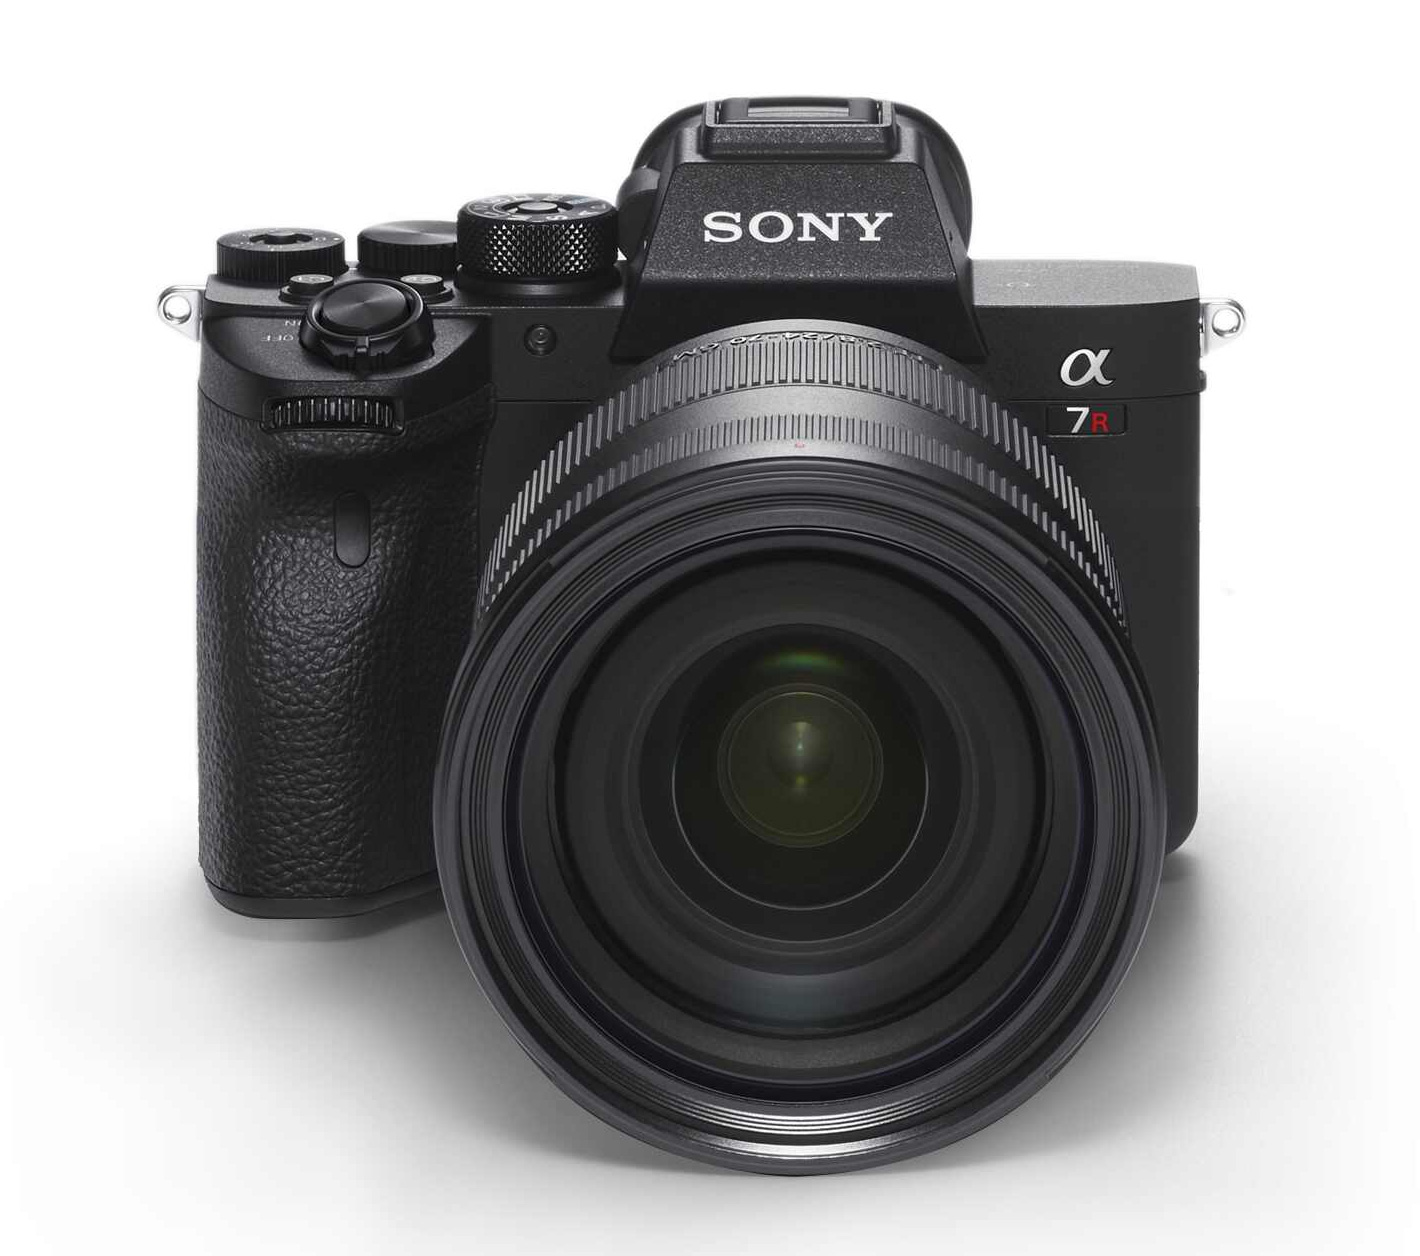 Sony's α7R IV has a Giant Mirrorless Sensor at werd.com